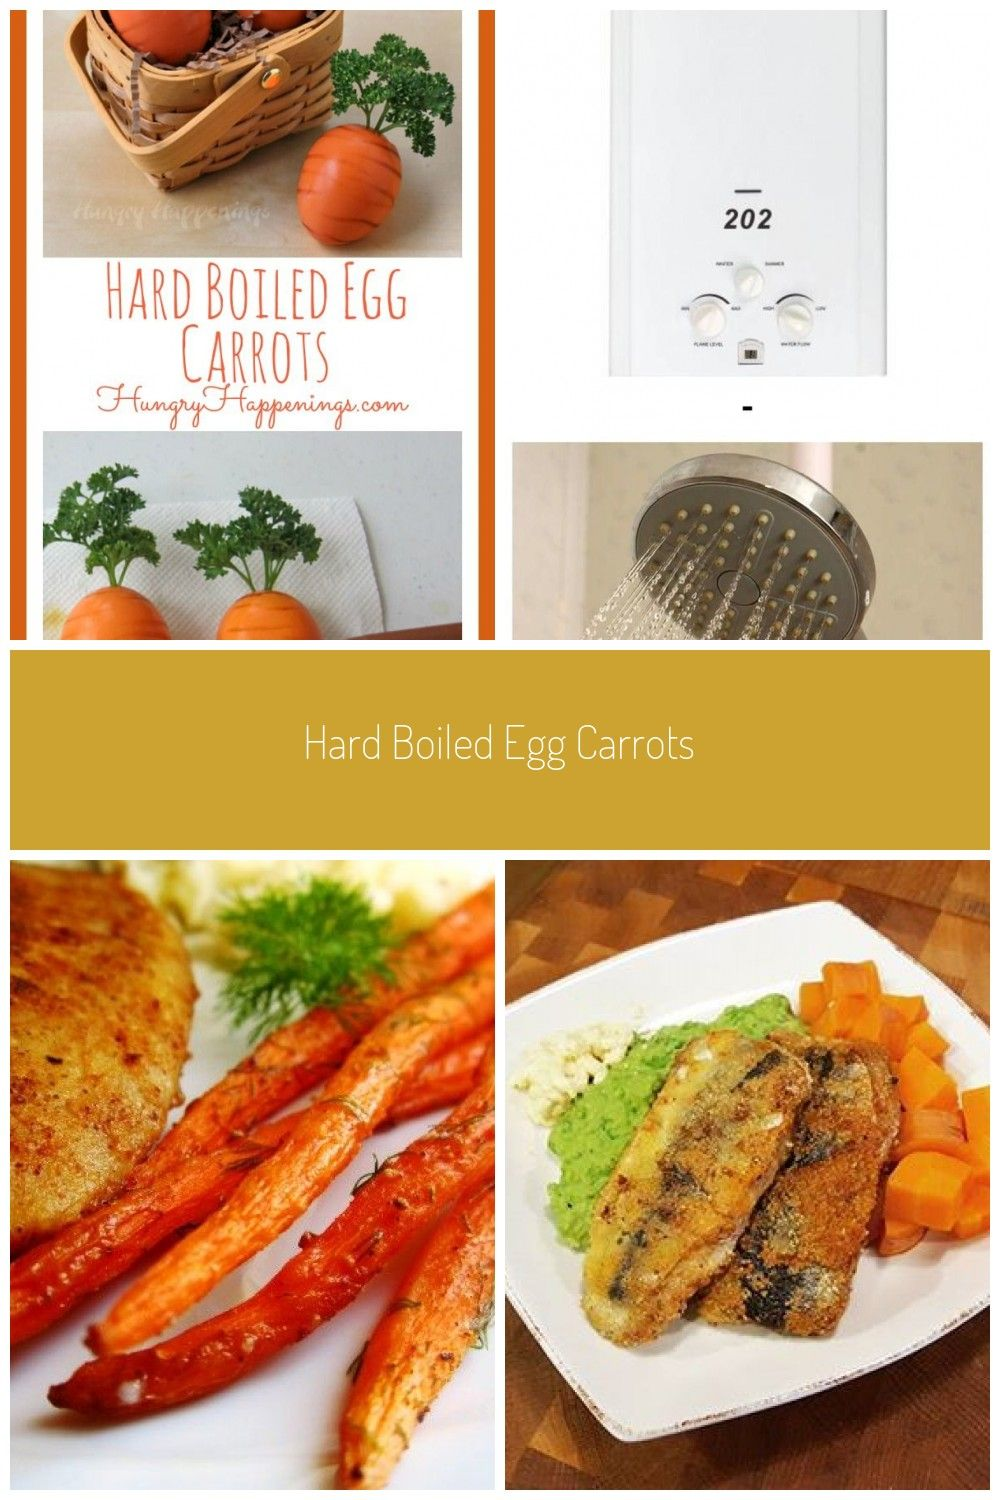 Here's another fun way to serve hard boiled eggs for Easter. These Hard Boiled Egg Carrots are fun and super easy to make. #boiled carrot Hard Boiled Egg Carrots #hardboiledeggs